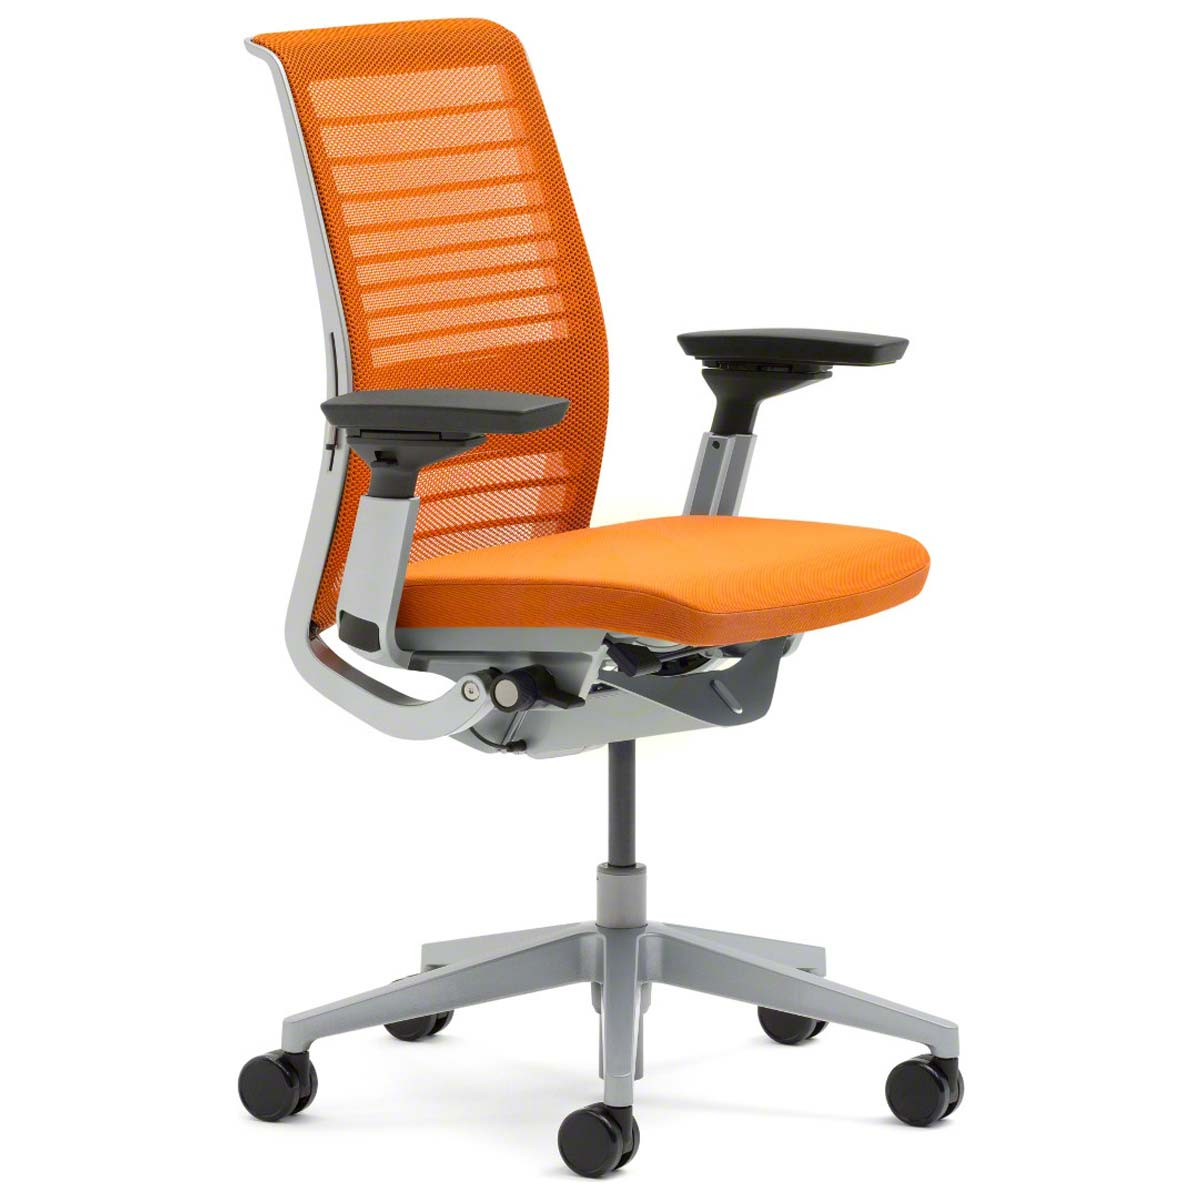 Steelcase Chairs Shop Steelcase Think Chairs With 3d Knit Back